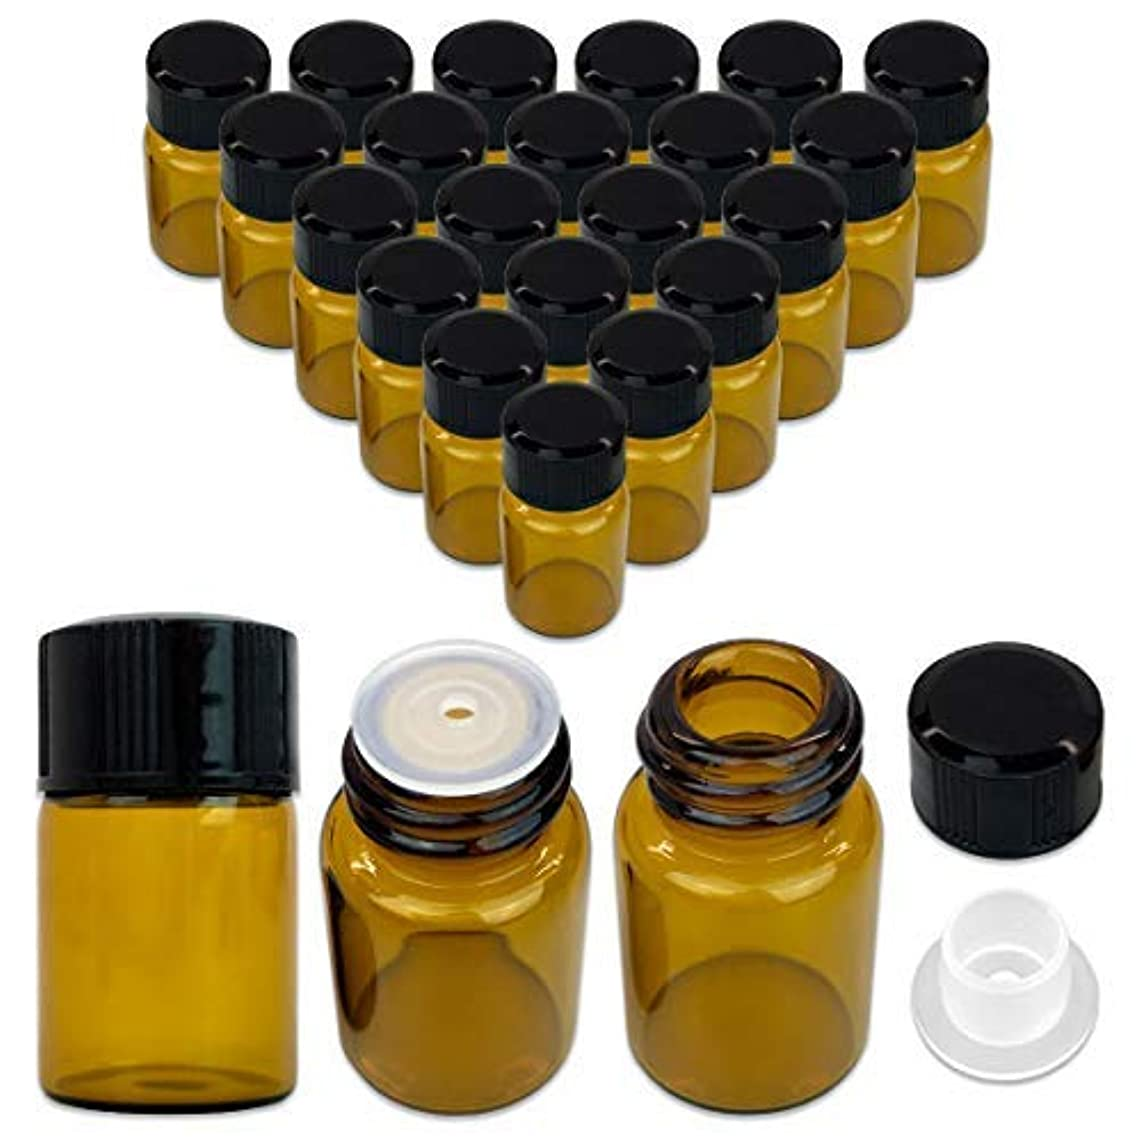 ボウリング洞察力行進24 Packs Beauticom 2ML Amber Glass Vial for Essential Oils, Aromatherapy, Fragrance, Serums, Spritzes, with Orifice Reducer and Dropper Top [並行輸入品]